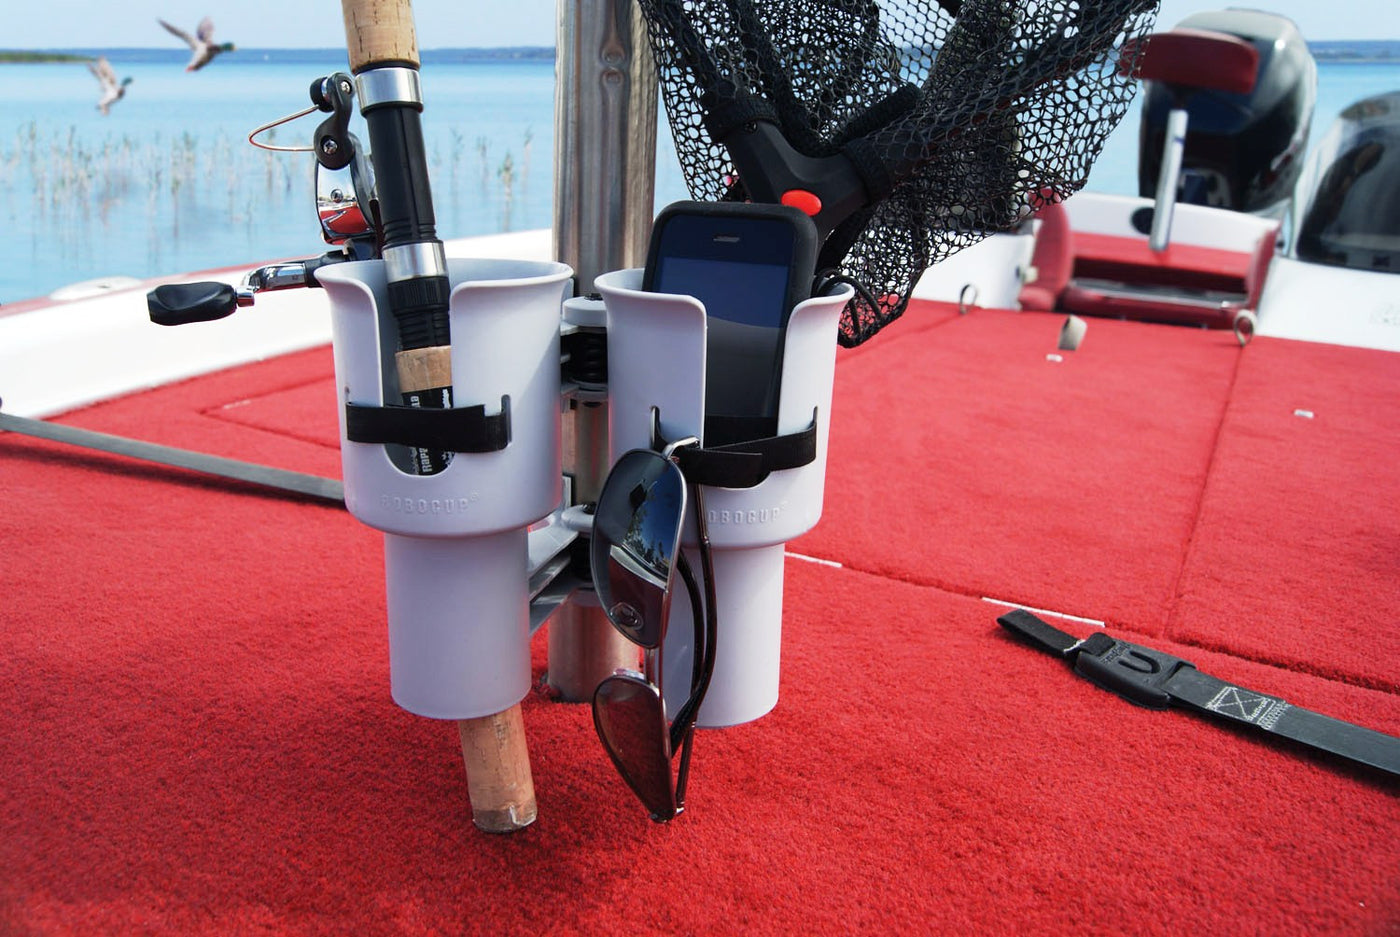 ROBOCUP is patented clamp on cup holder for fishing boat